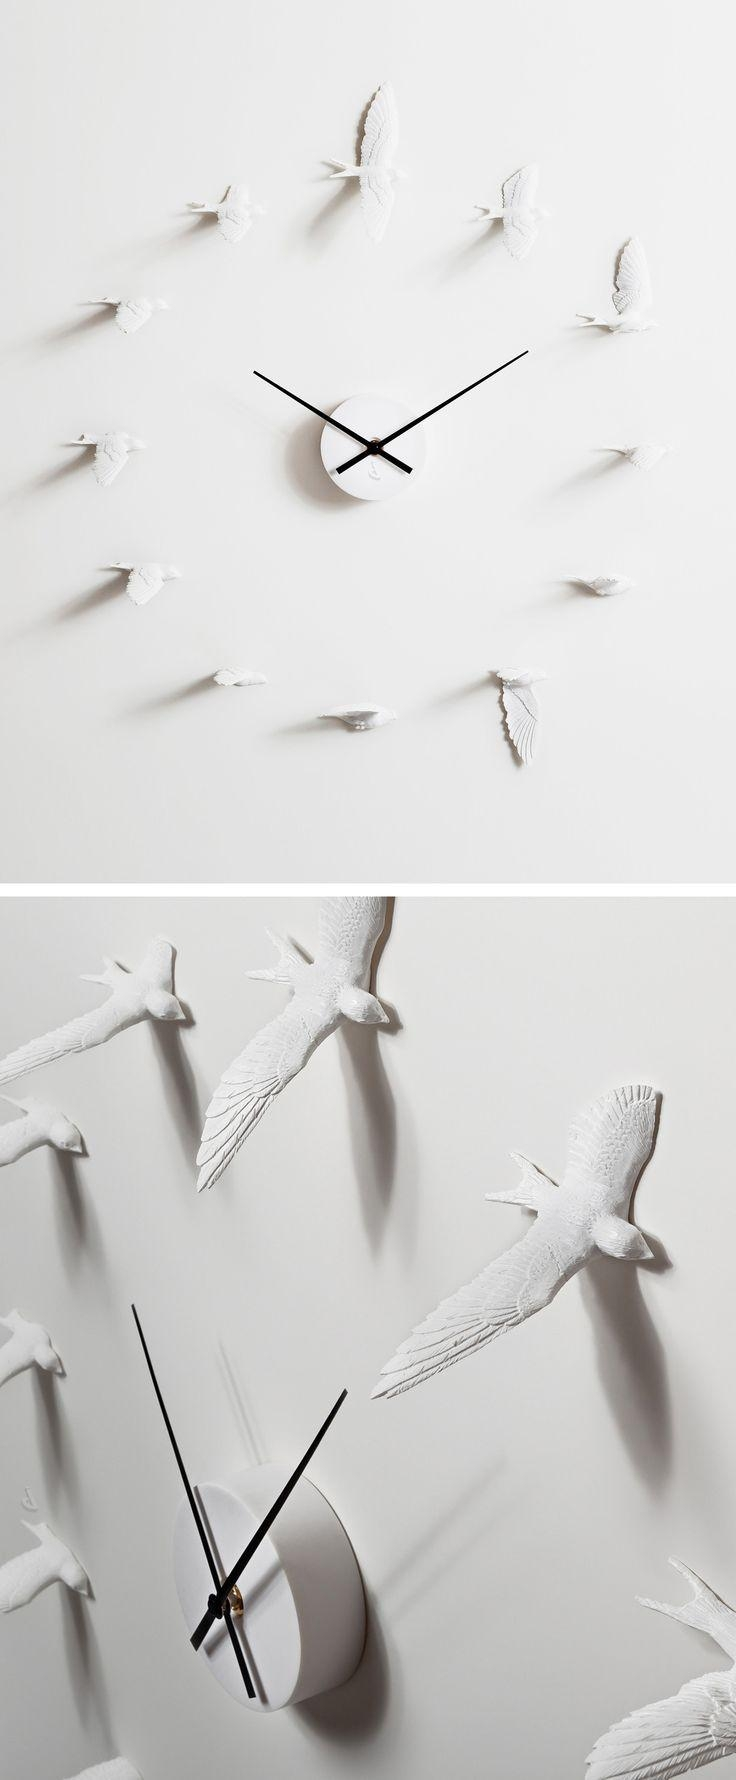 47 Best Ceramic Wall Hangings. Wall Art. Wall Décor. Images On within Ceramic Bird Wall Art